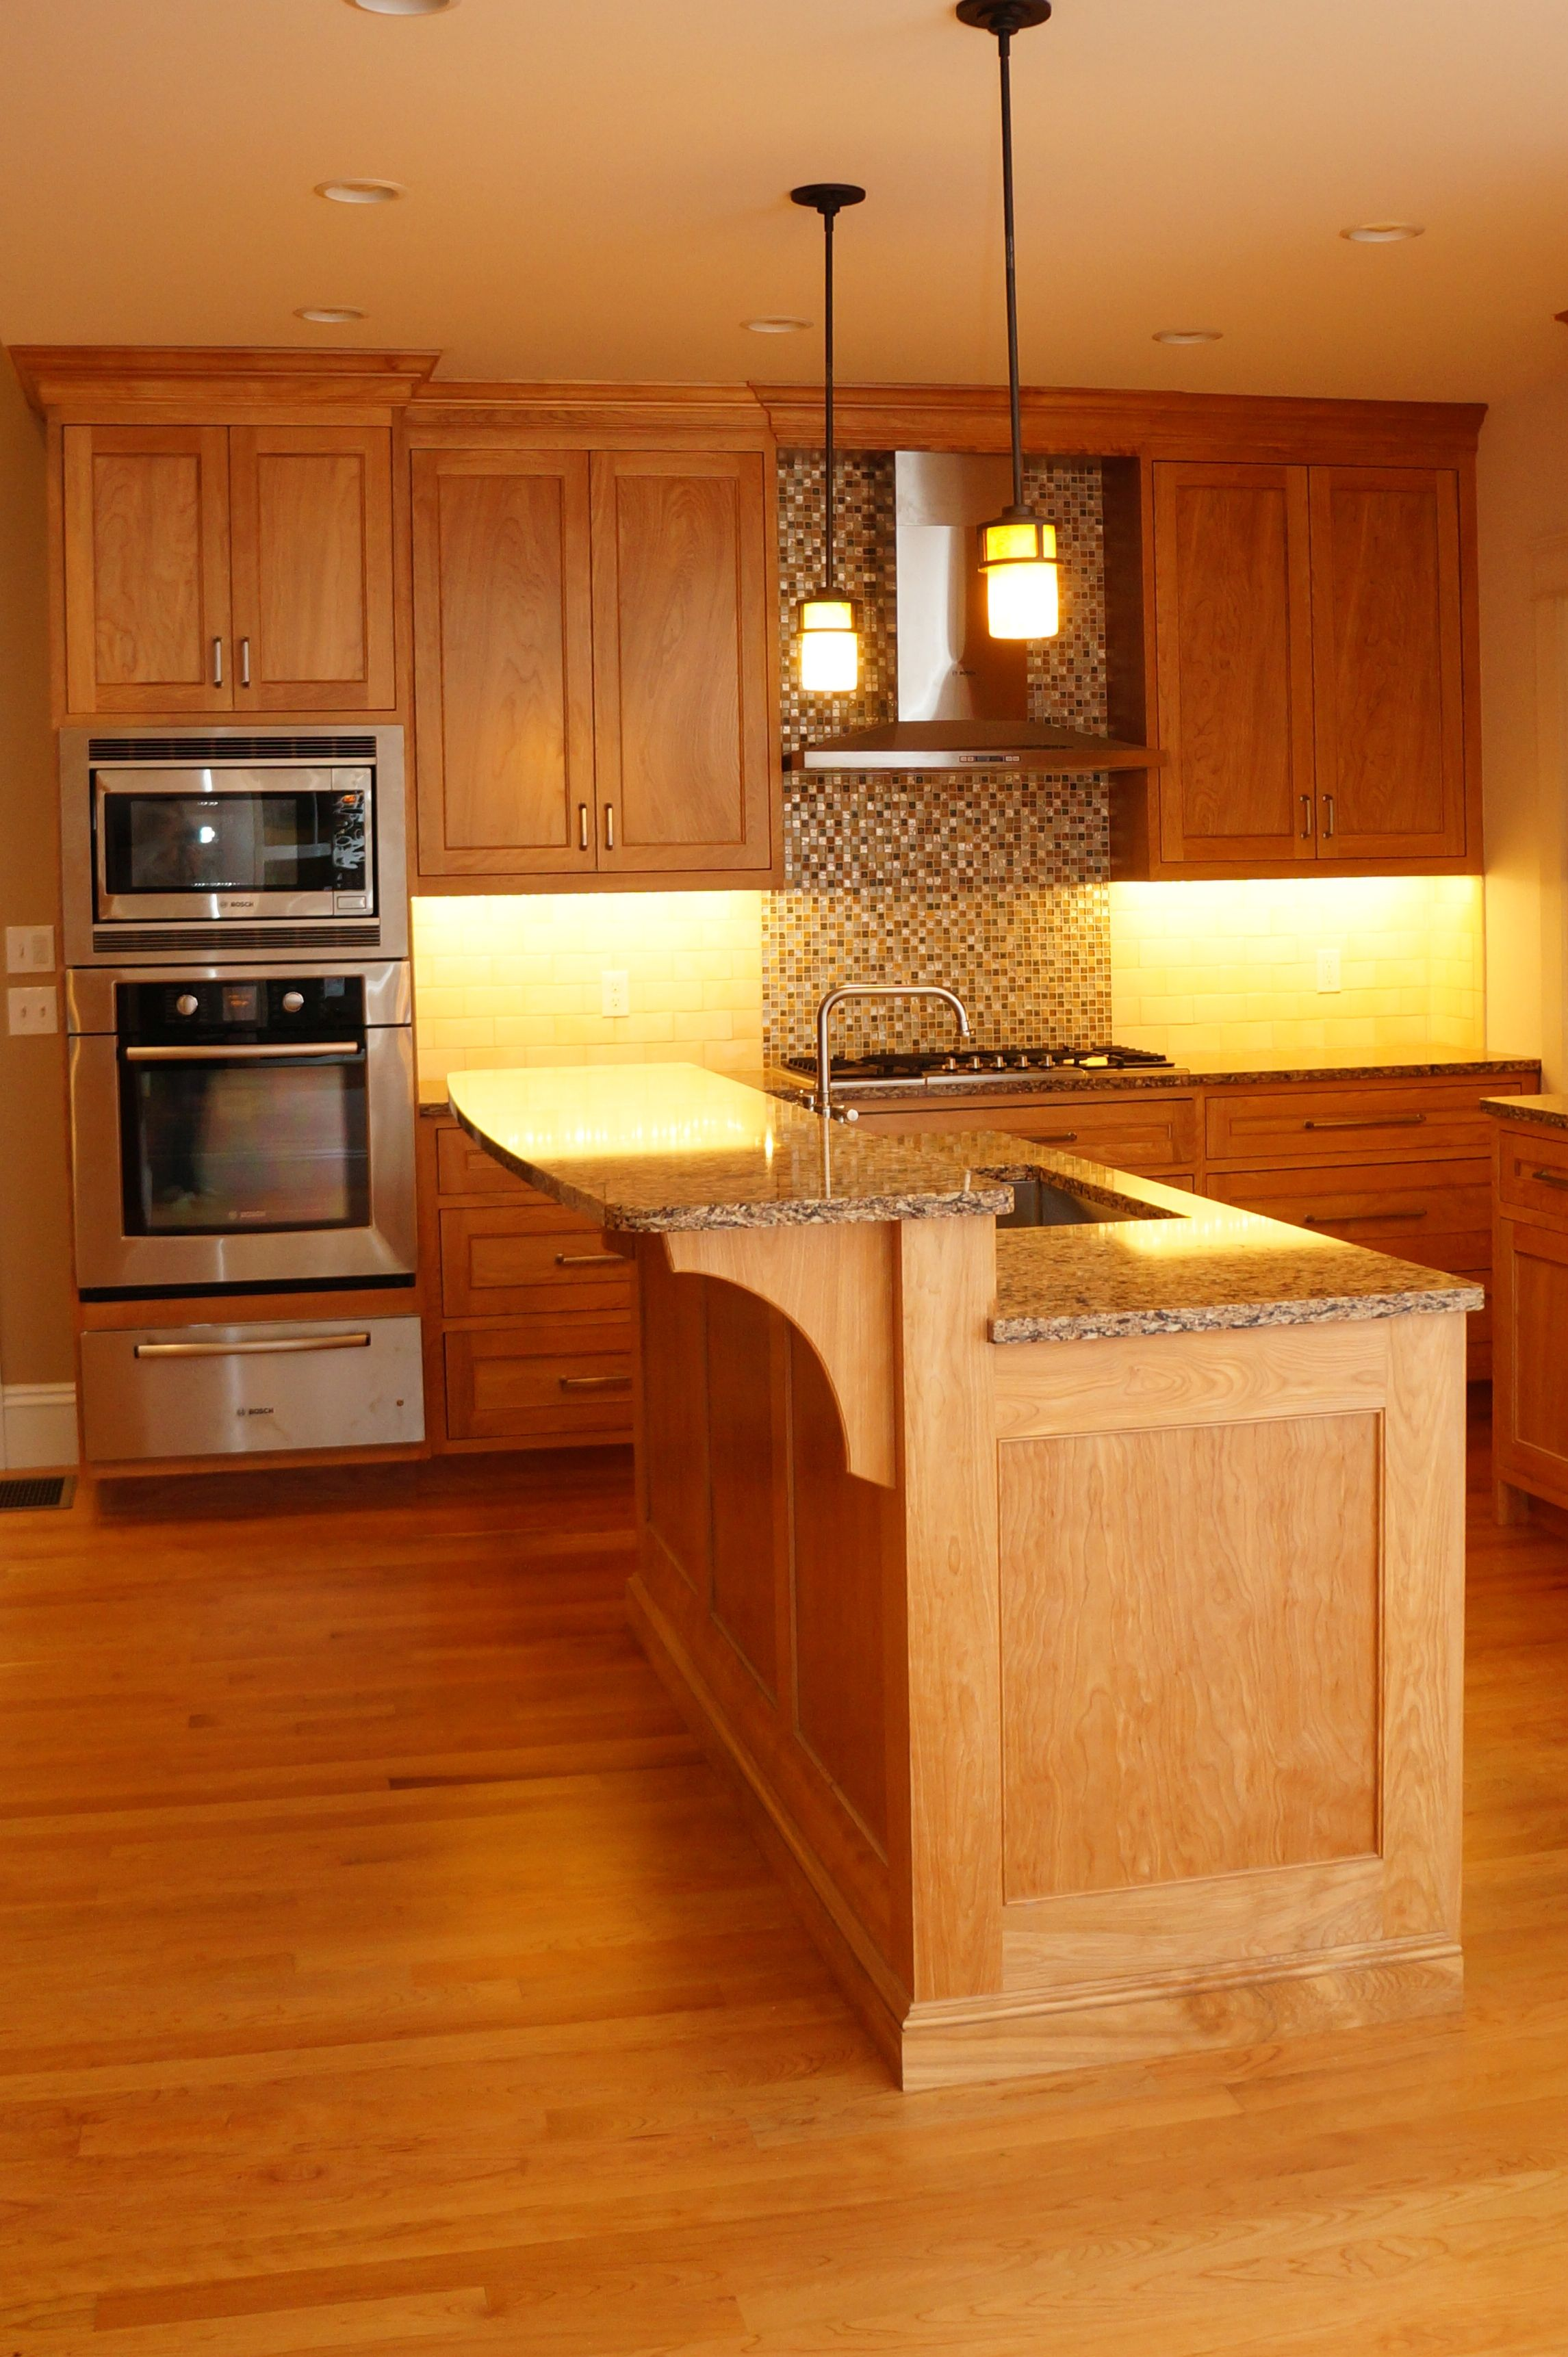 Raised Island Counter Handcrafted By Taylor Made Cabinets Leominster Ma Serving Machusetts For Fine Custom Cabinetry